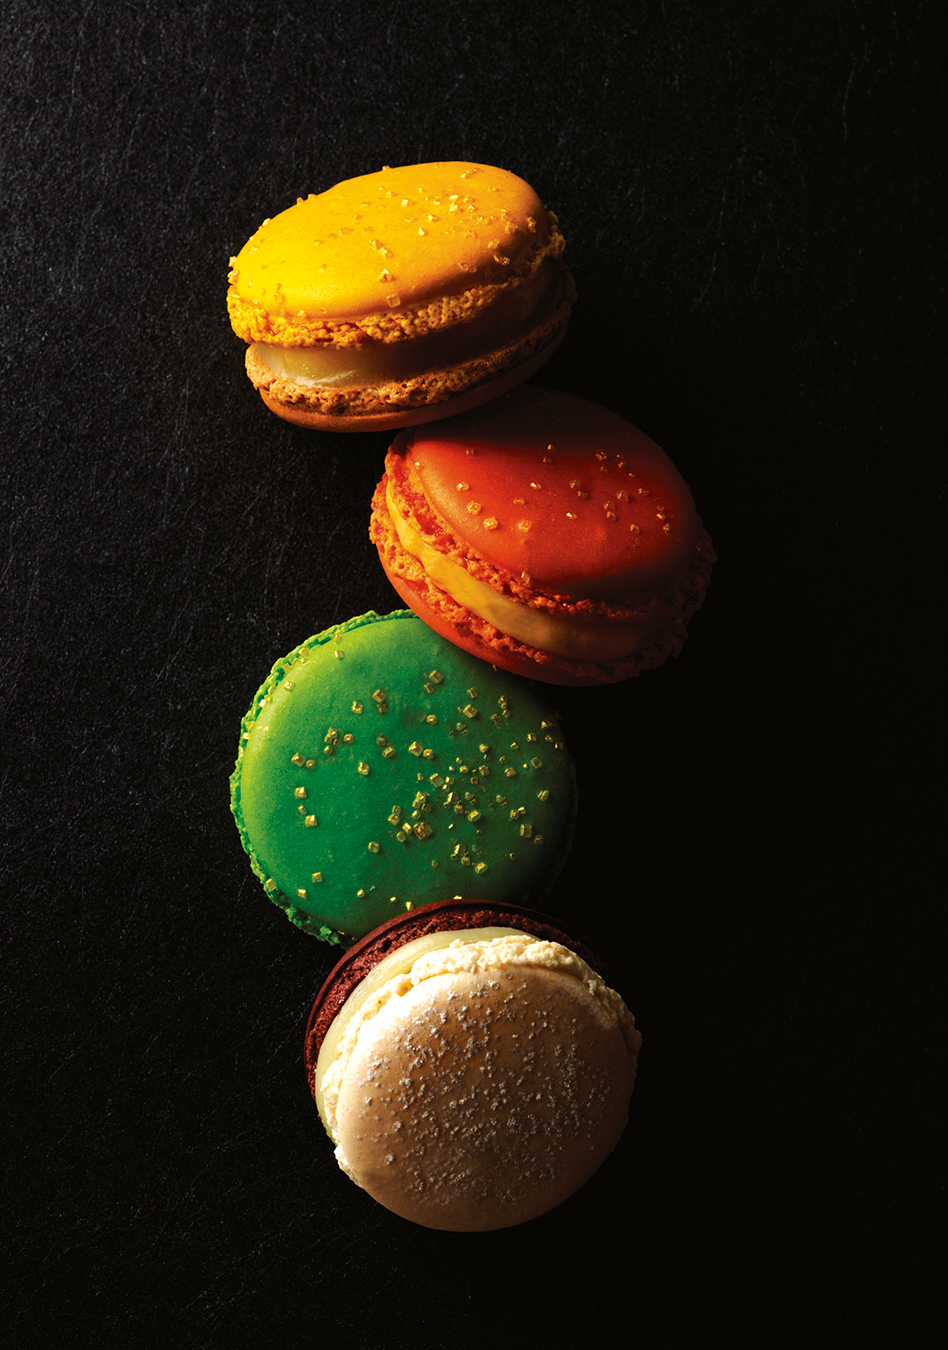 NUVO Magazine: The Macarons of Pierre Hermé